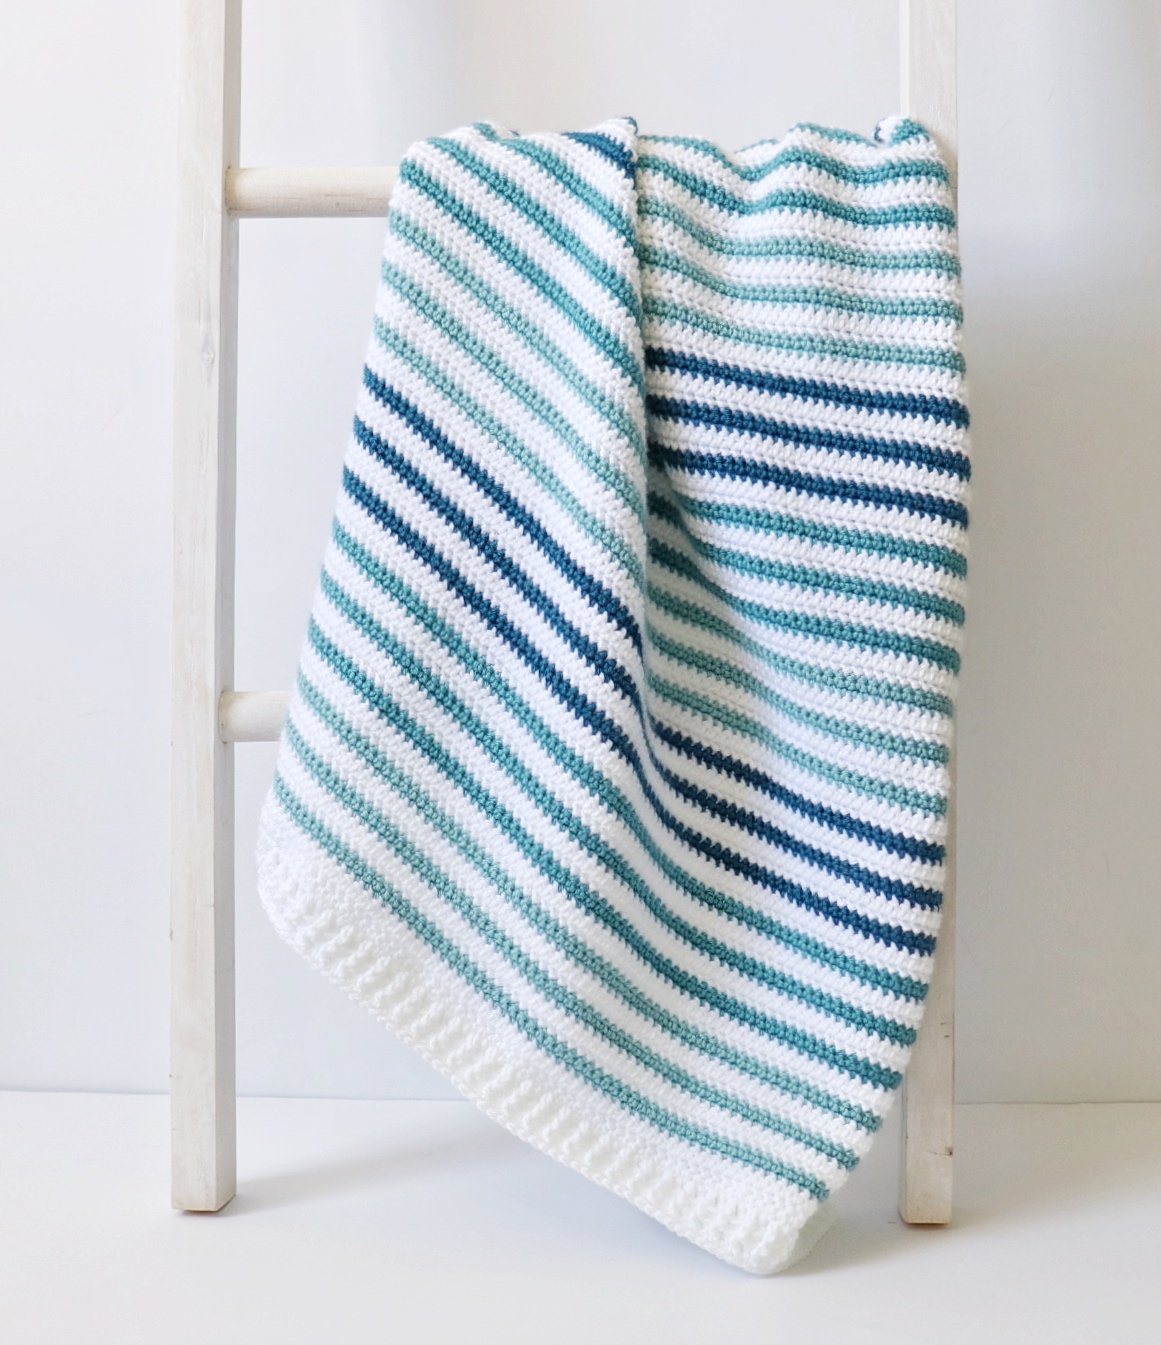 Crochet Teal Stripes Baby Blanket Daisy Farm Crafts